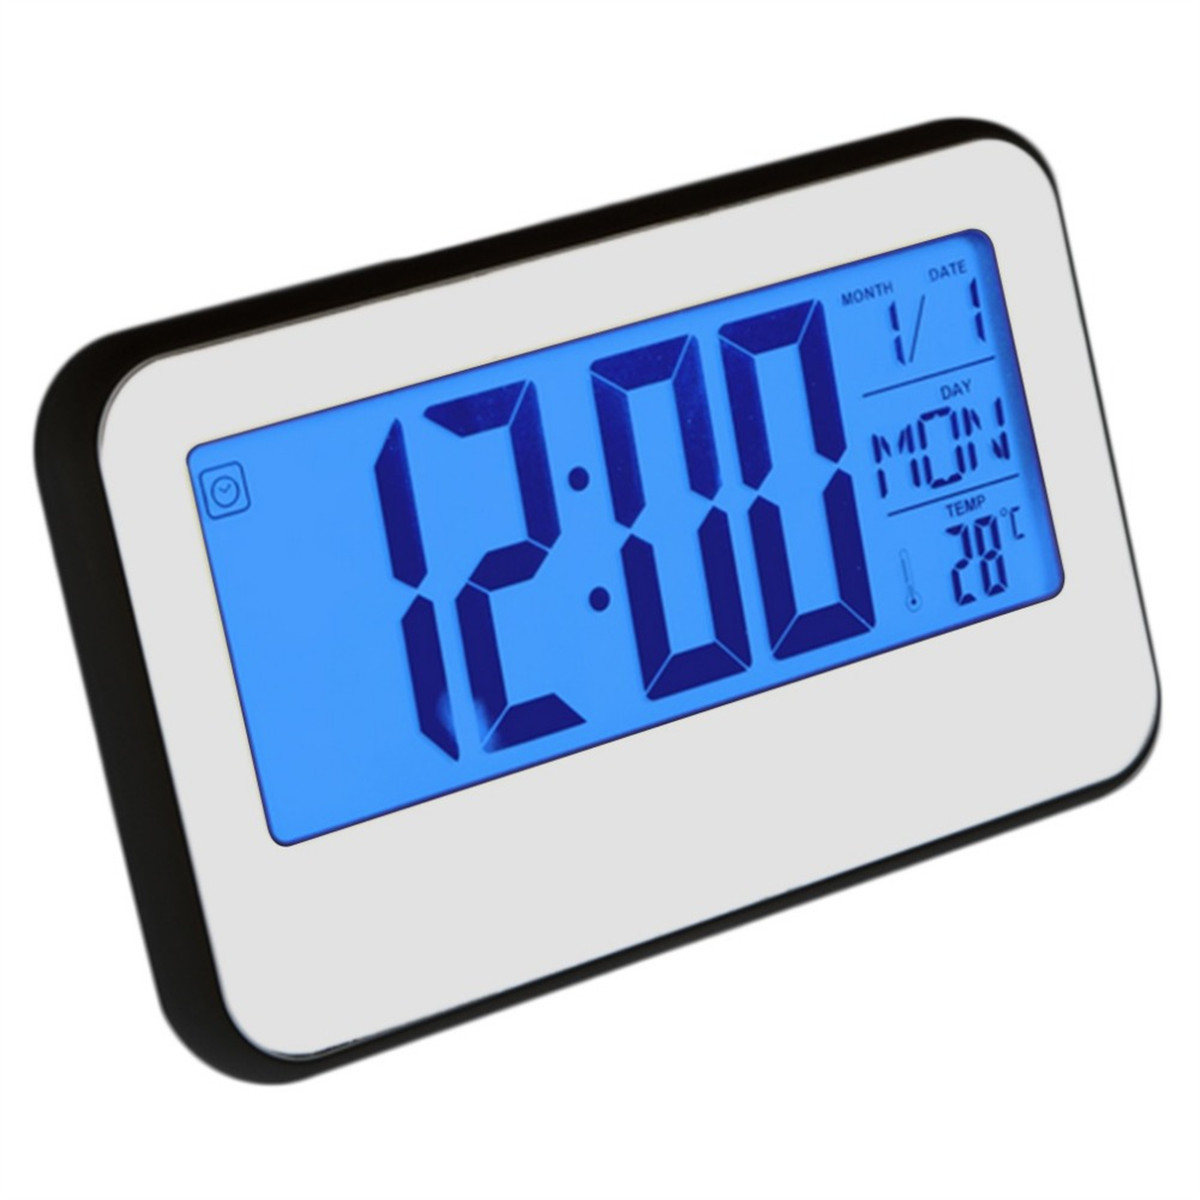 LCD Display Digital Alarm Clock Sound Controlled With Thermometer